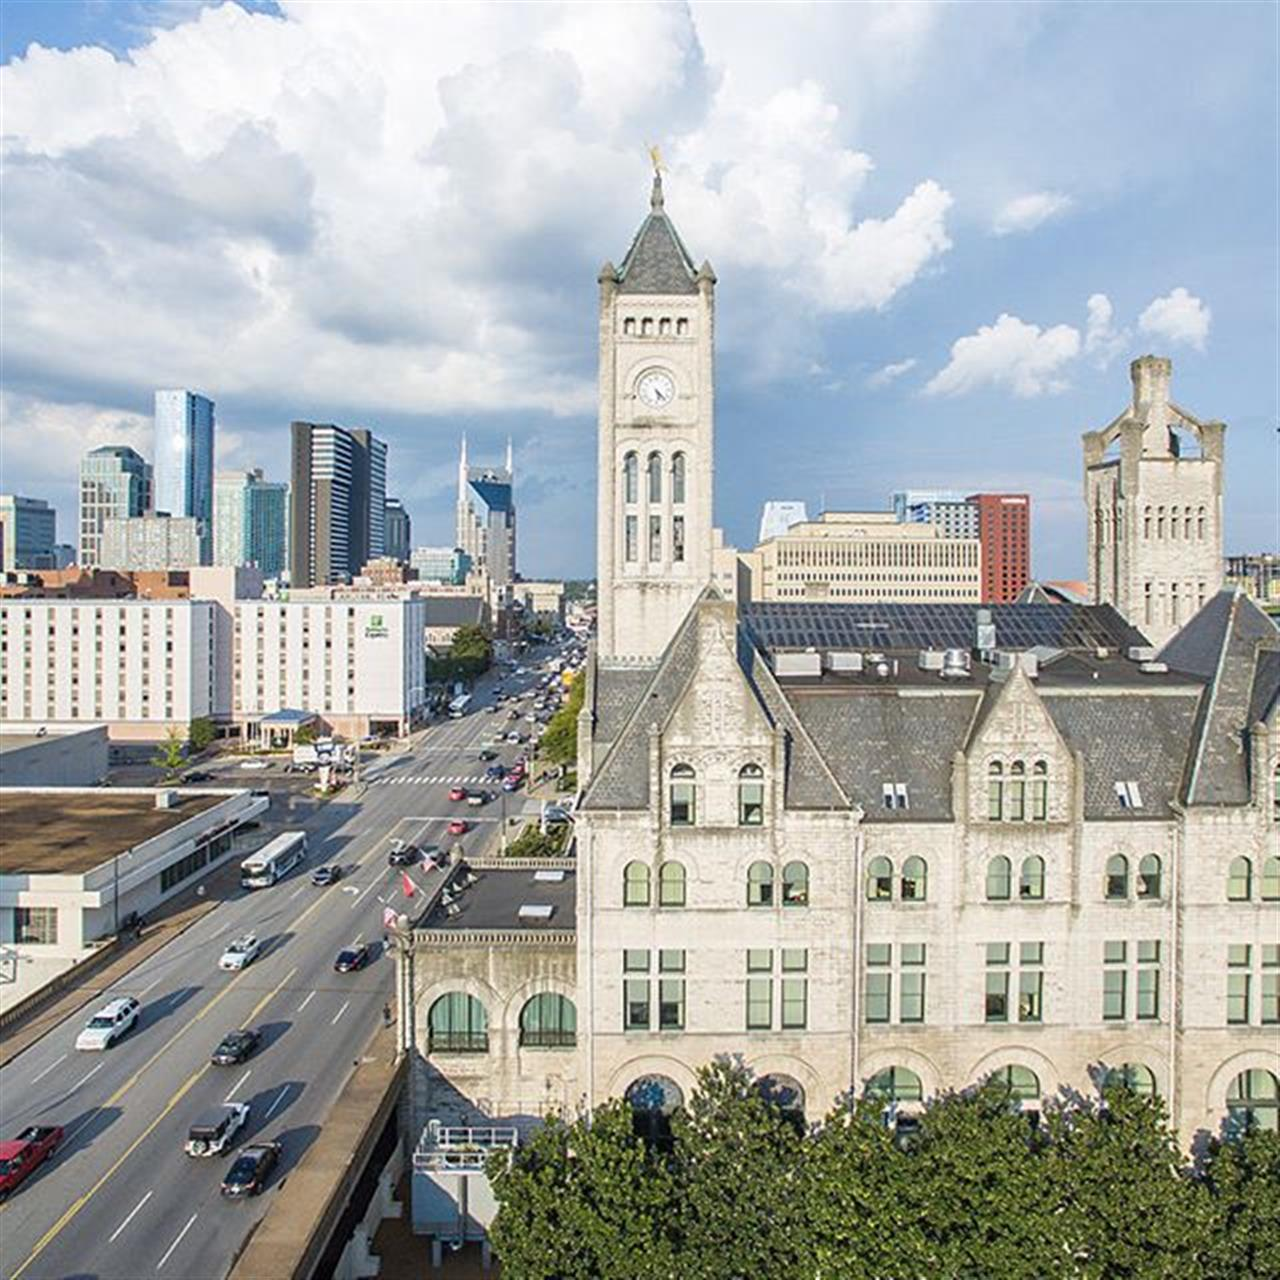 Nashville is such a beautiful city and incredibly rich in history. @unionstationnashville was built in 1900 as the city's train station and now serves as one of the city's most beautiful hotels.  #UnionStation #Nashville #Tennessee #MusicCity #theGulch #Broadway #DowntownNashville #HistoricHotel #ParksRealty #LeadingRE #LeadingRELocal